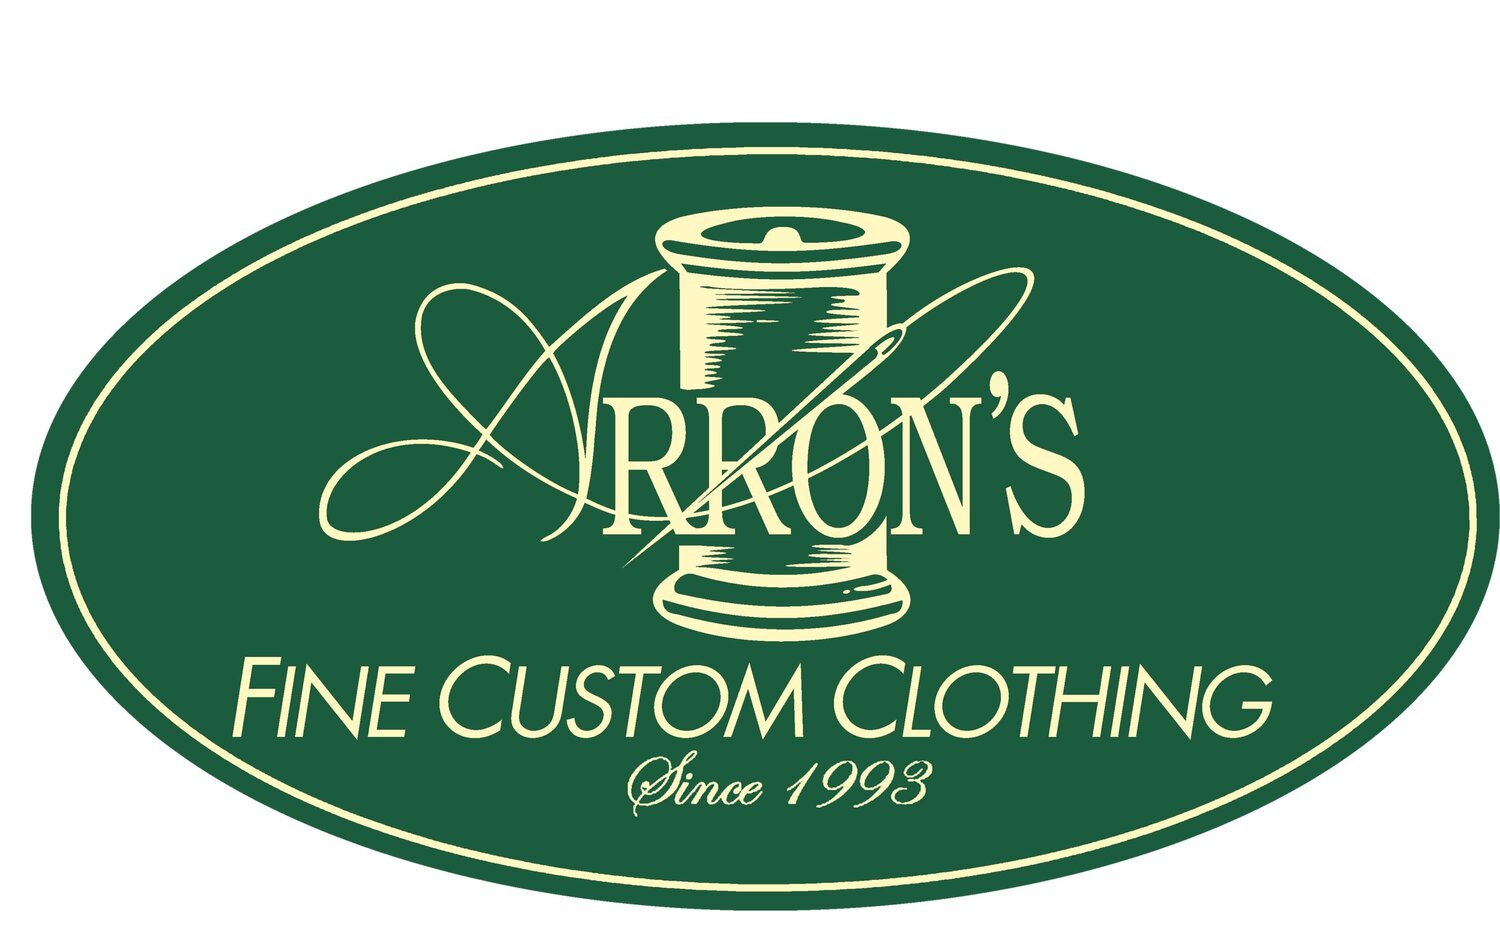 Arron's Fine Custom Clothing